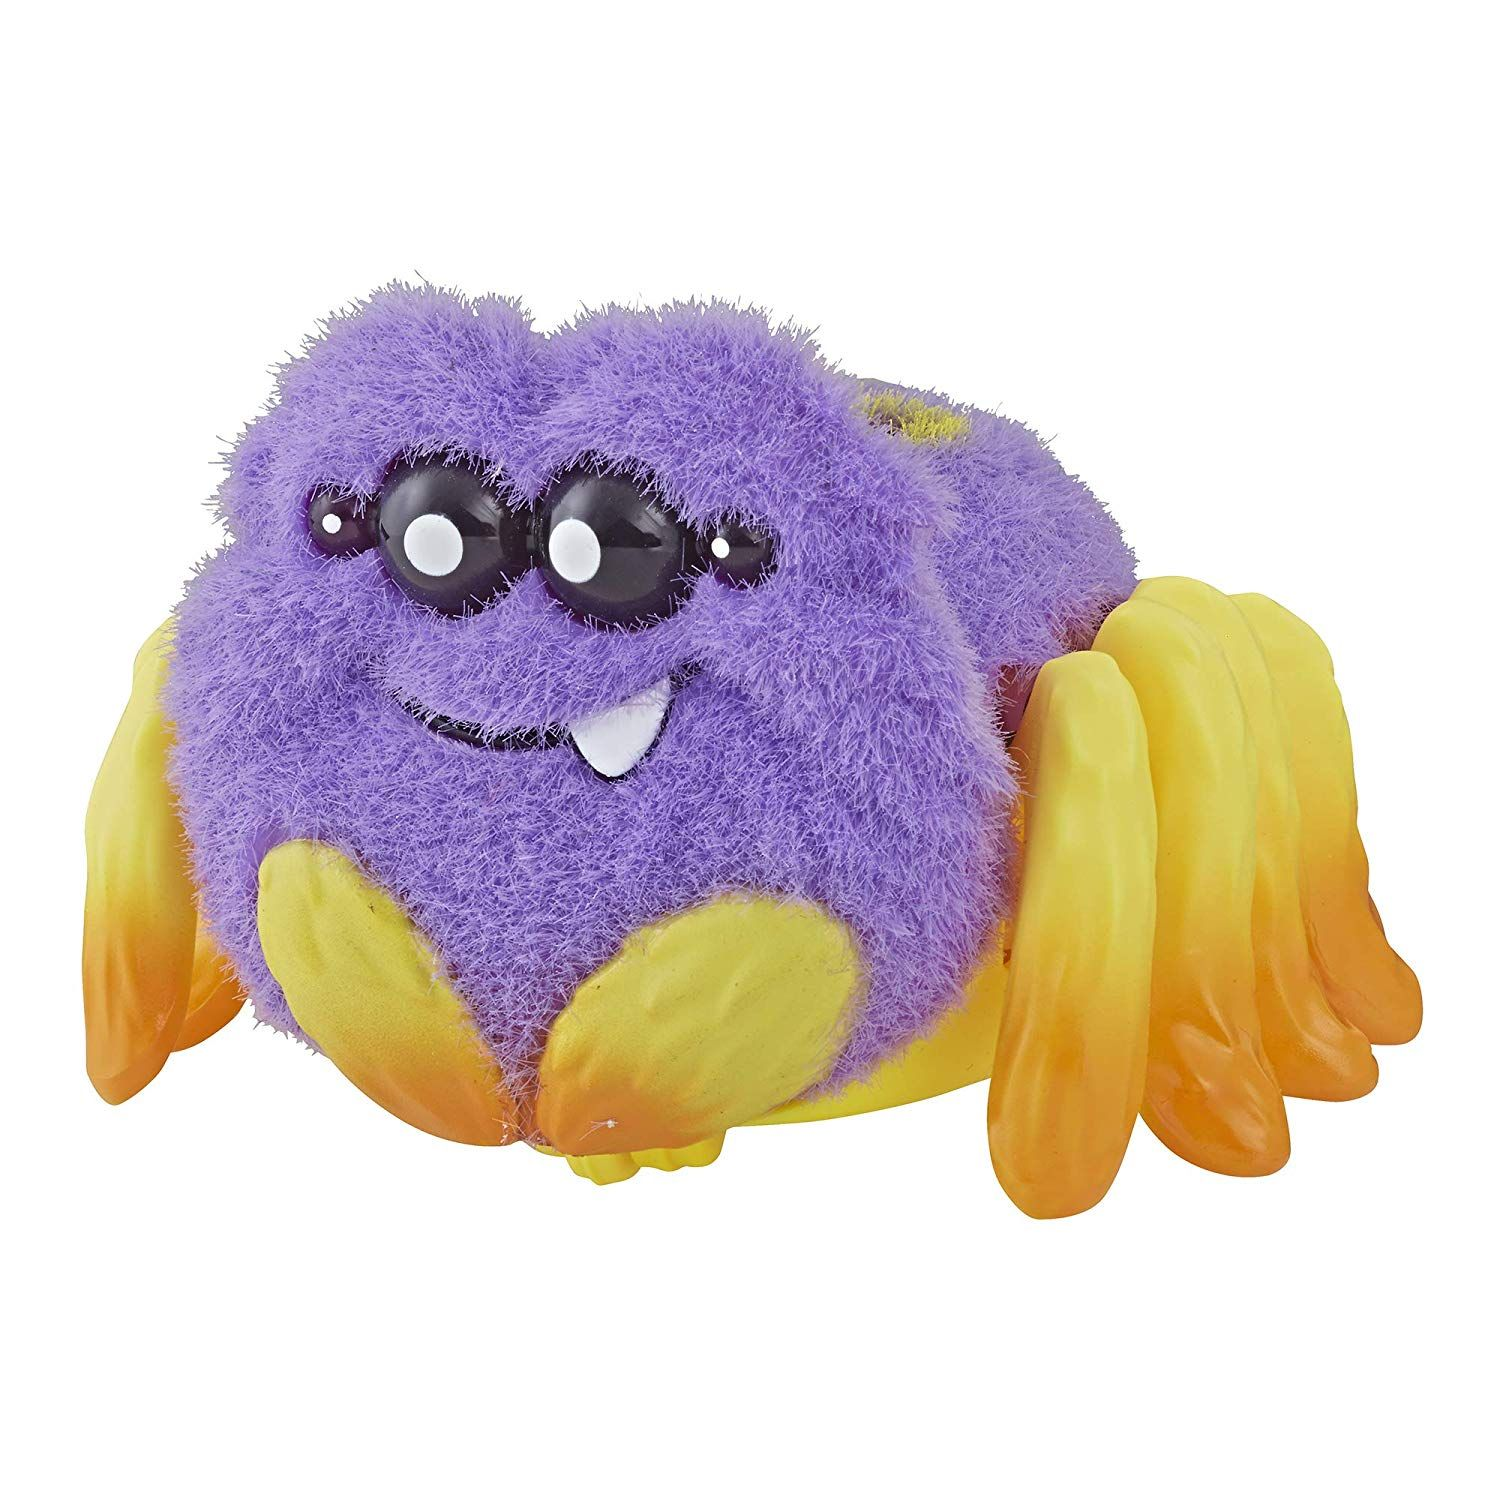 Yellies Harry Scoots Spider The Voice Pet Spider Toys